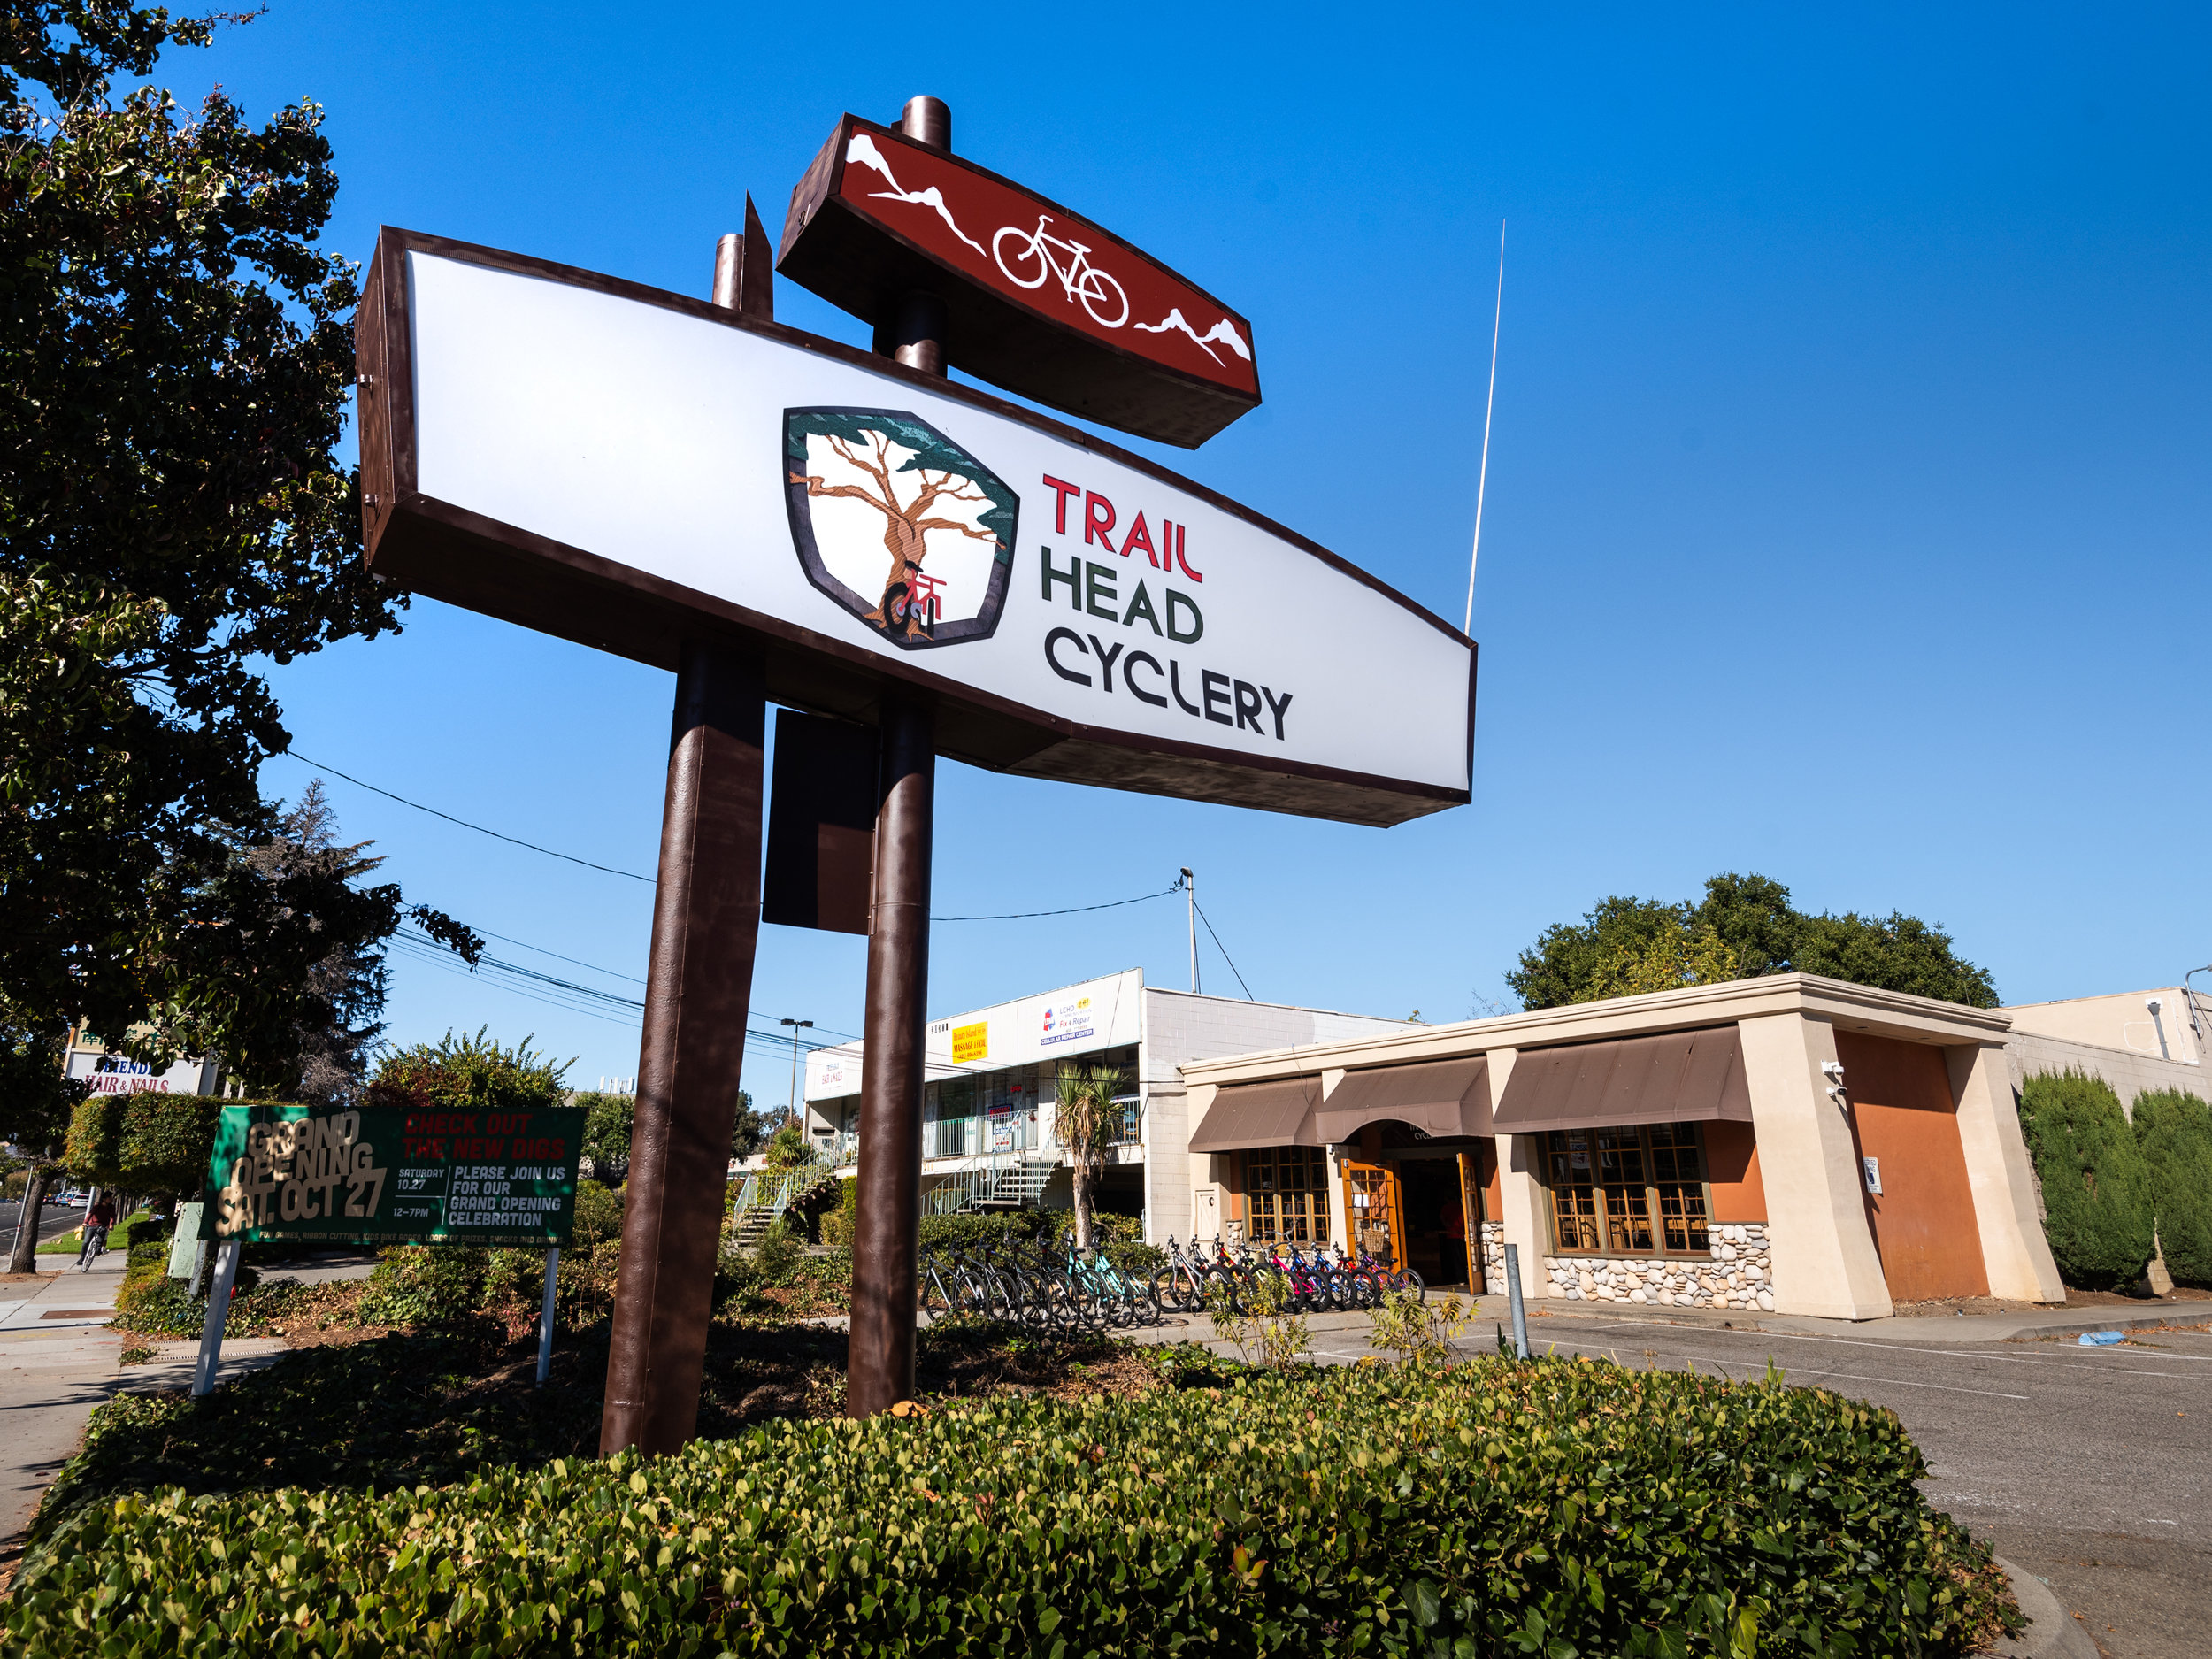 Trail Head Cyclery - Advertising - V2 2.JPG